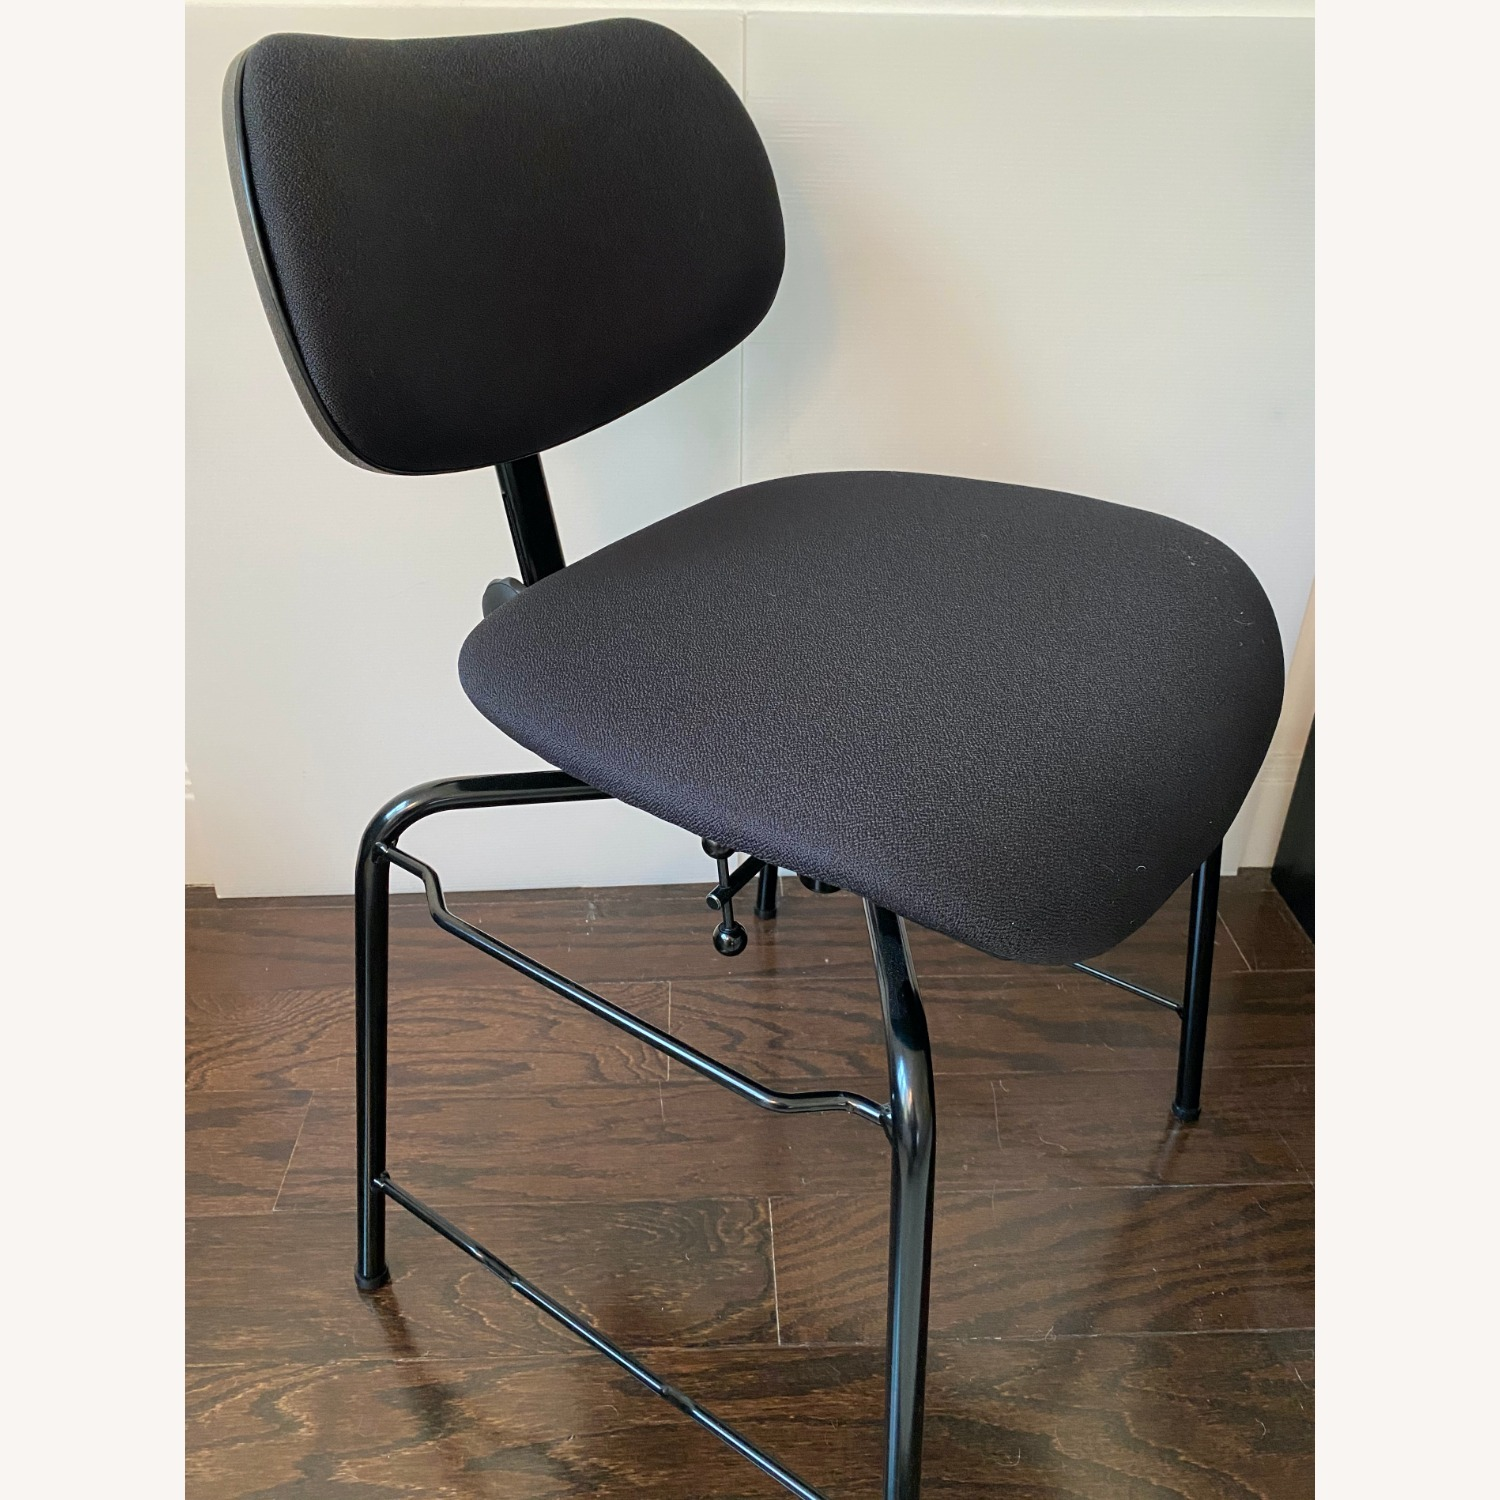 "Wilde + Spieth ""Orchestra"" Chair Black - image-17"